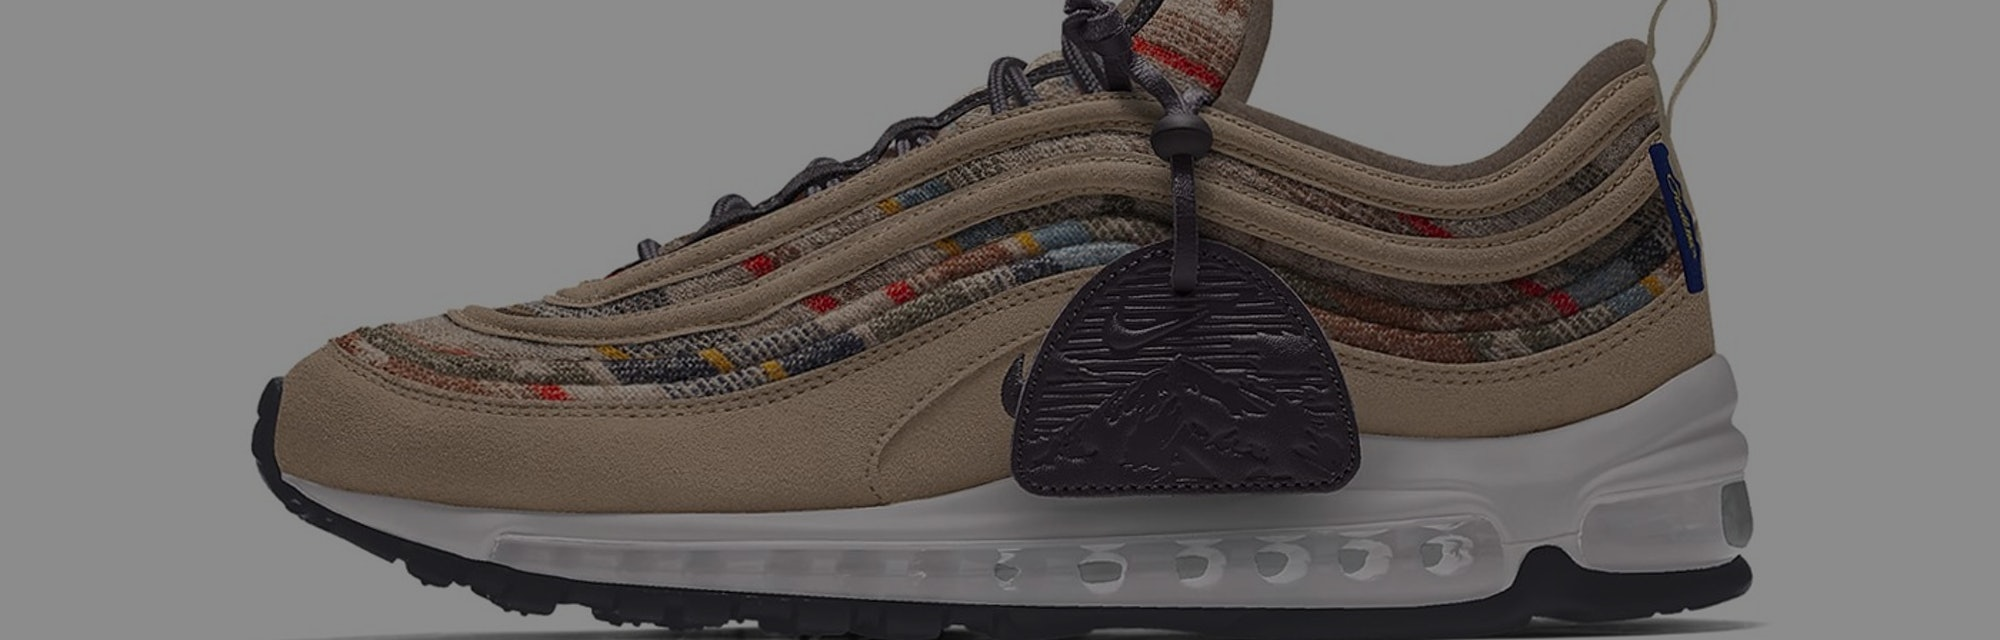 Nike By You Pendleton Air Max 97